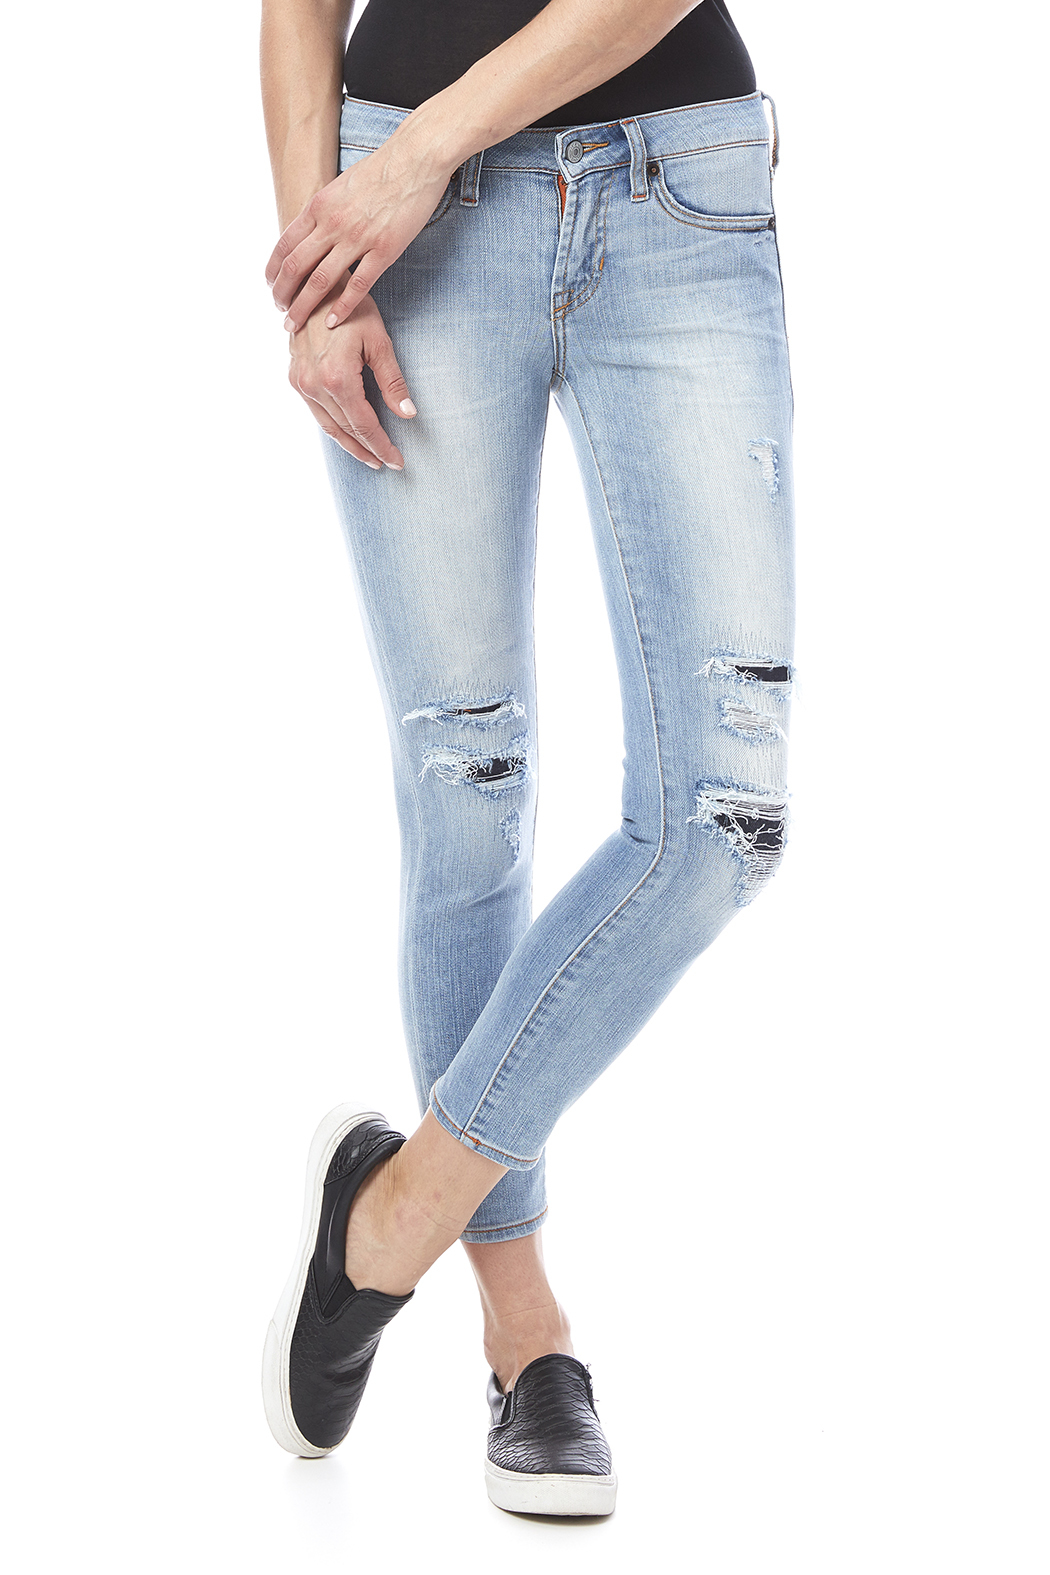 Jean Shop Patty Destroyed Jeans - Main Image